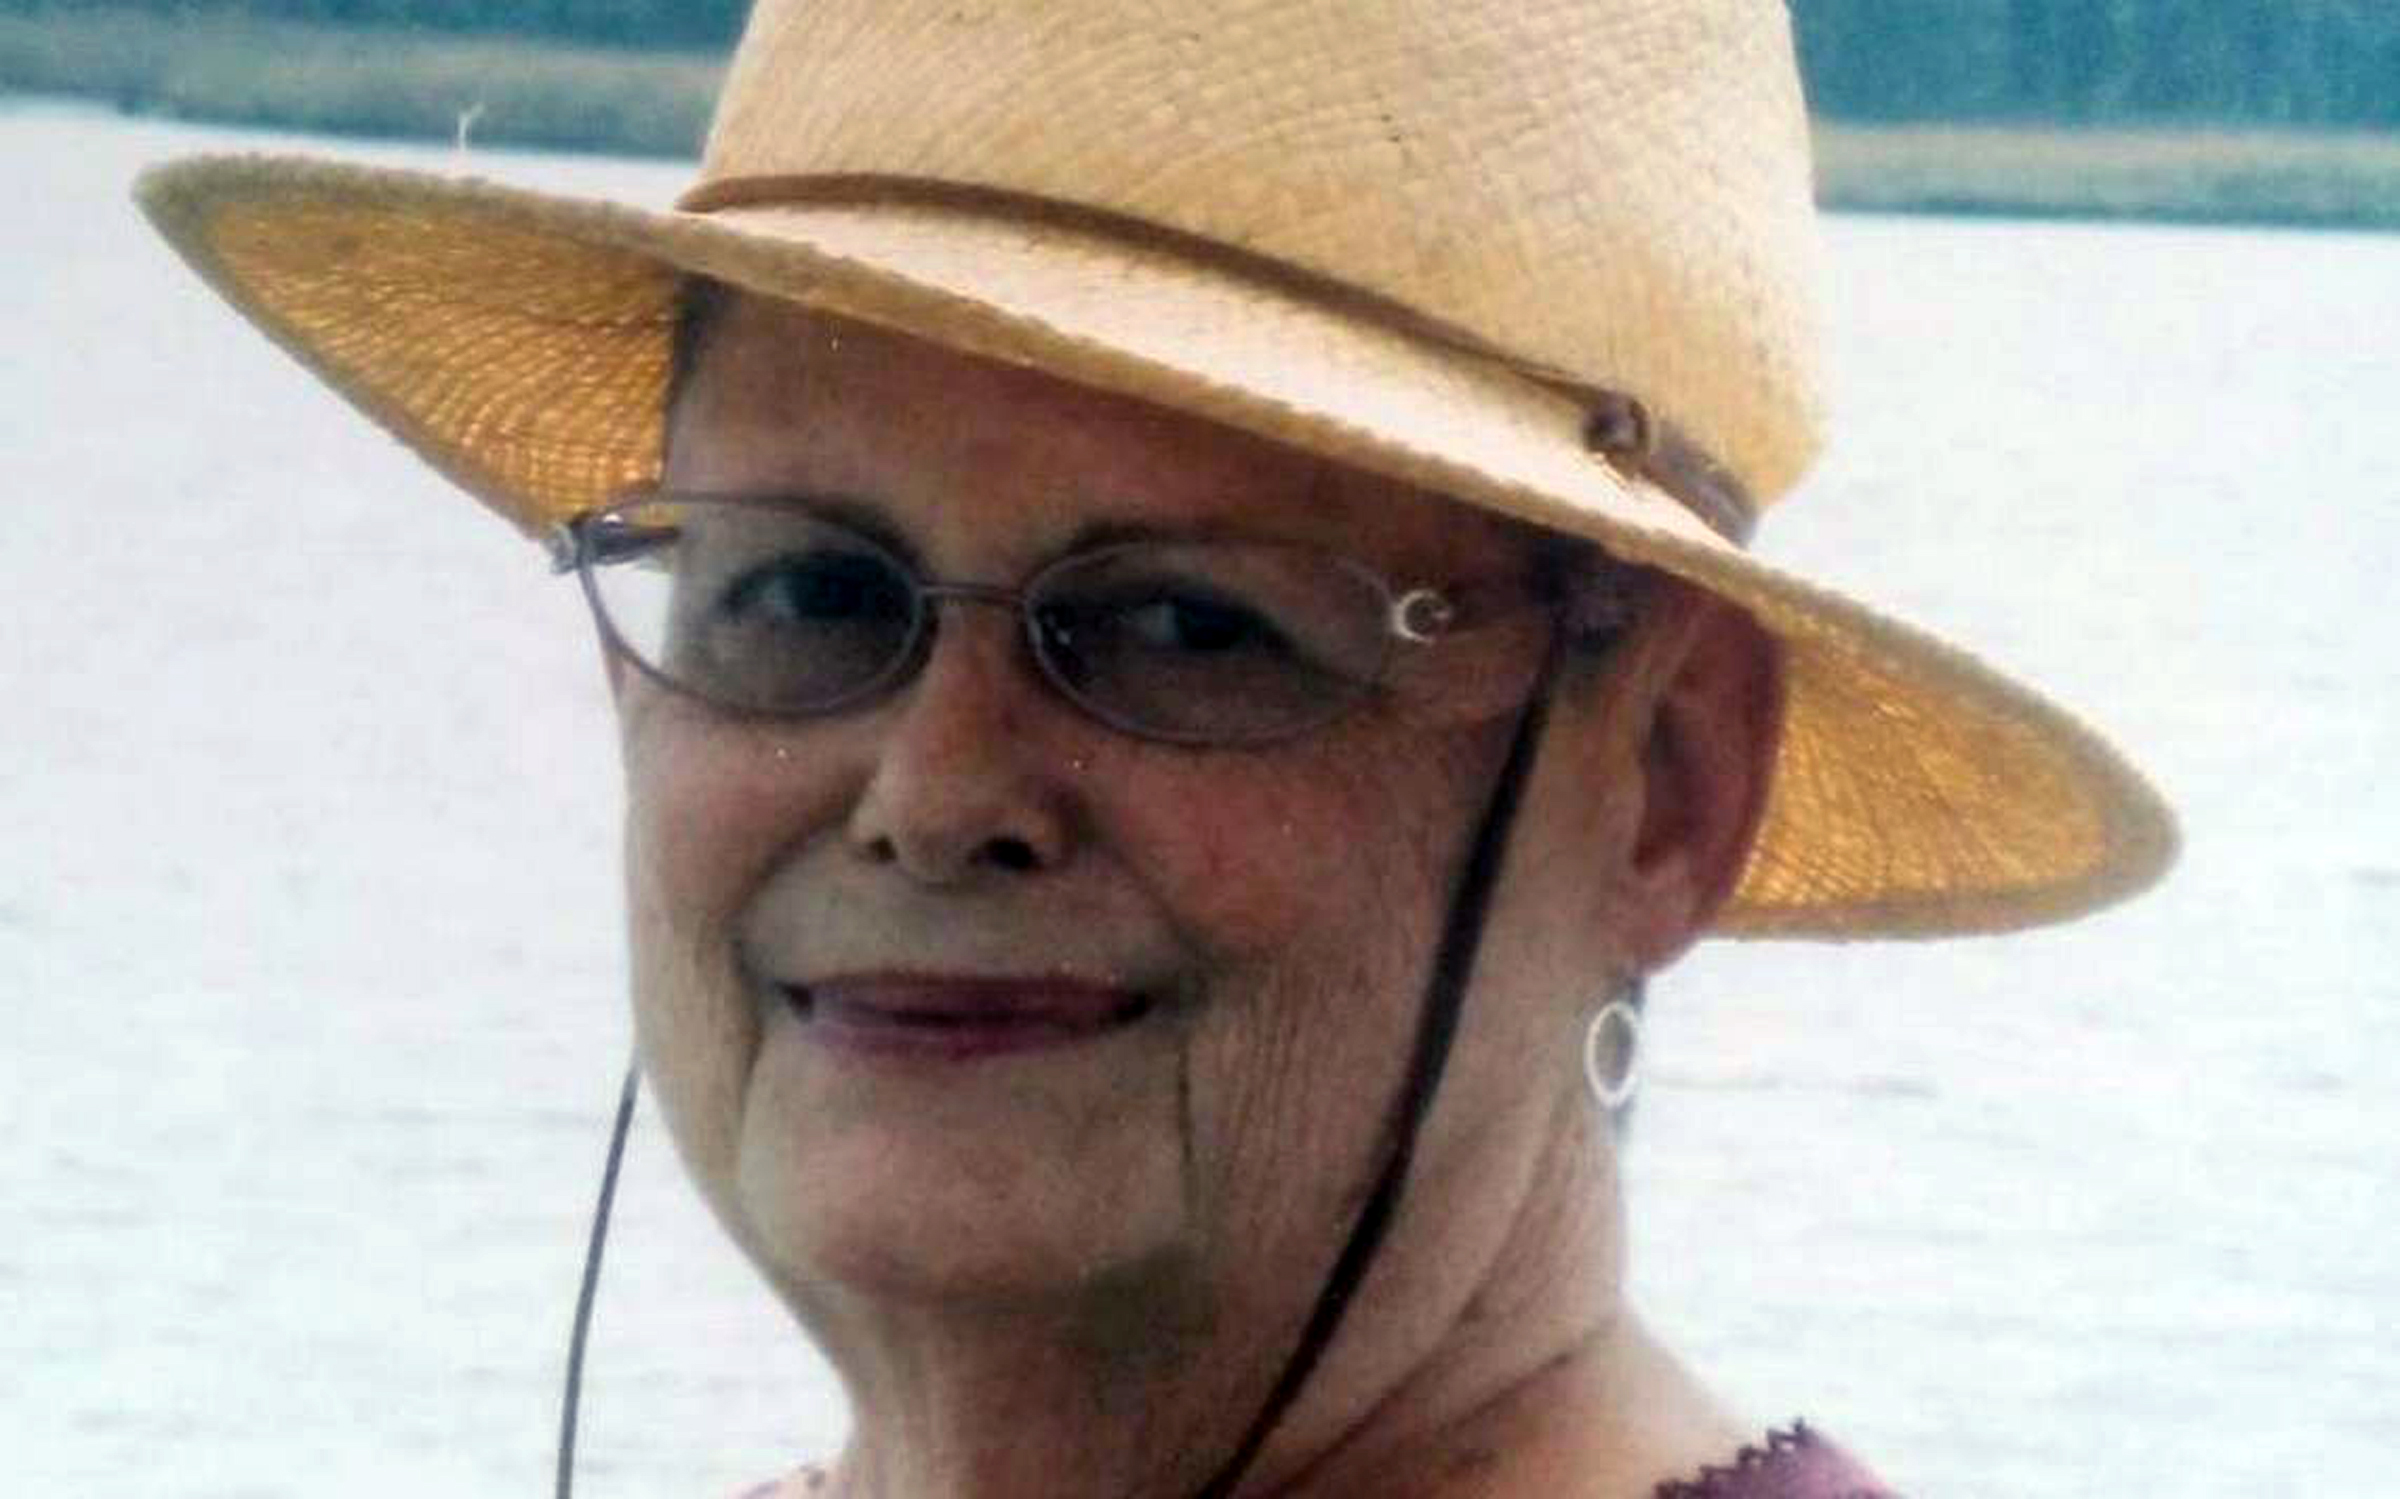 Who Was Peggy Bowman? - Reproductive Justice Warrior, Activist and Author, 1941-2016